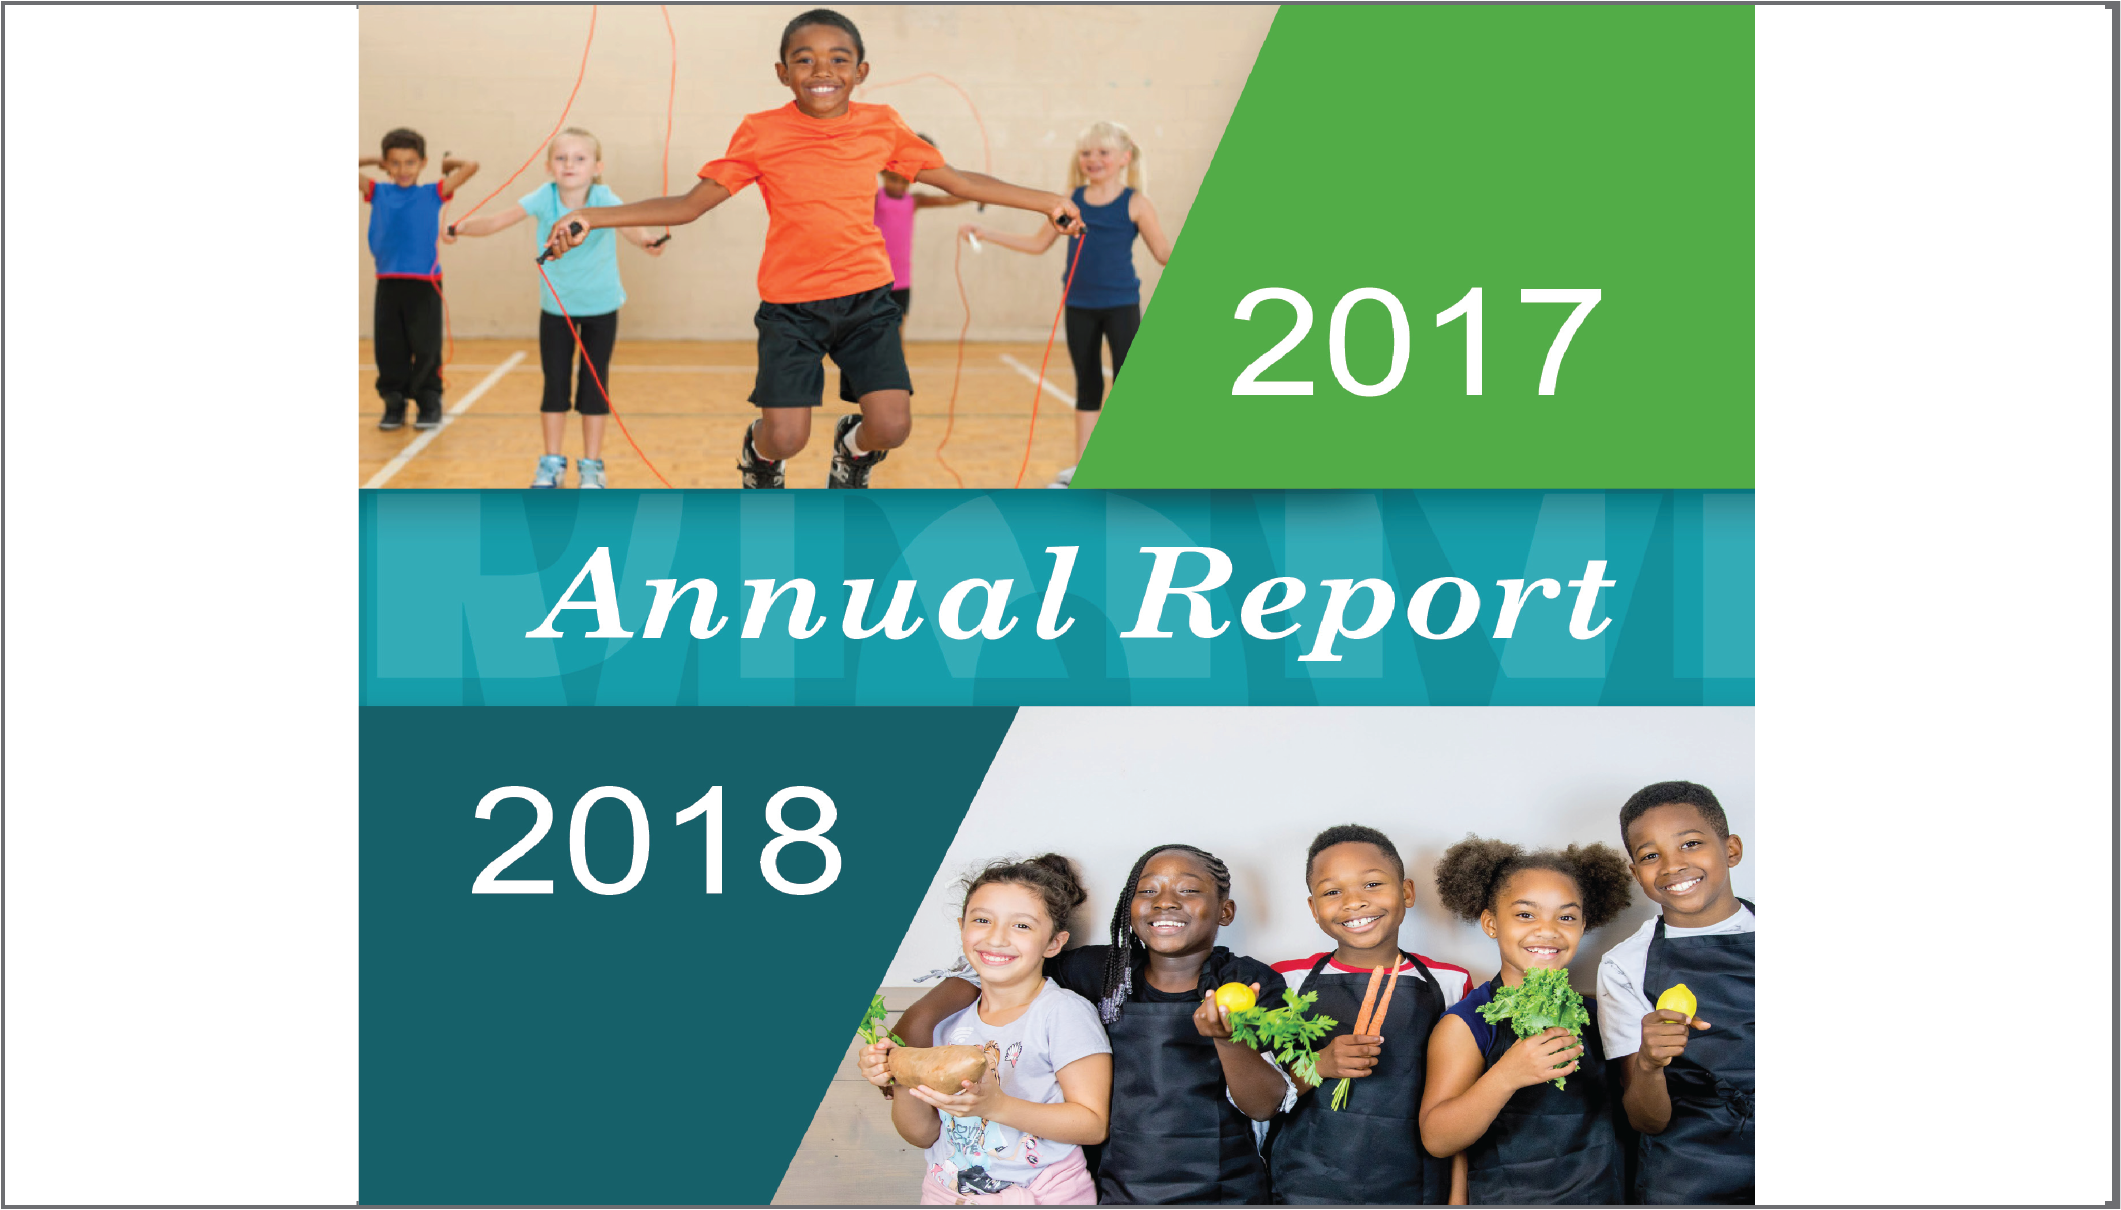 Cover Page from HealthMPowers Annual Report 2017-2018 cropped